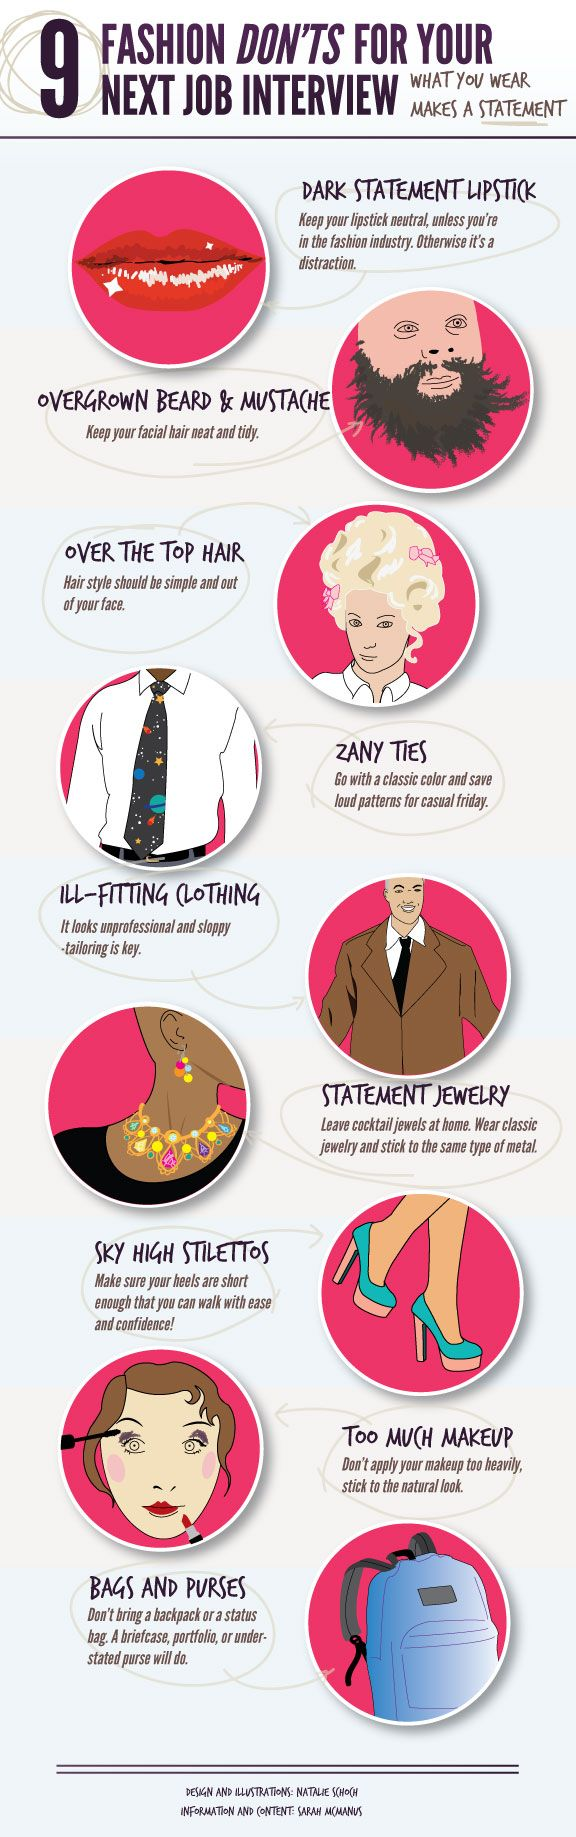 9 #Fashion Dontu0027s For Your Next #Job #Interview | CareerBliss